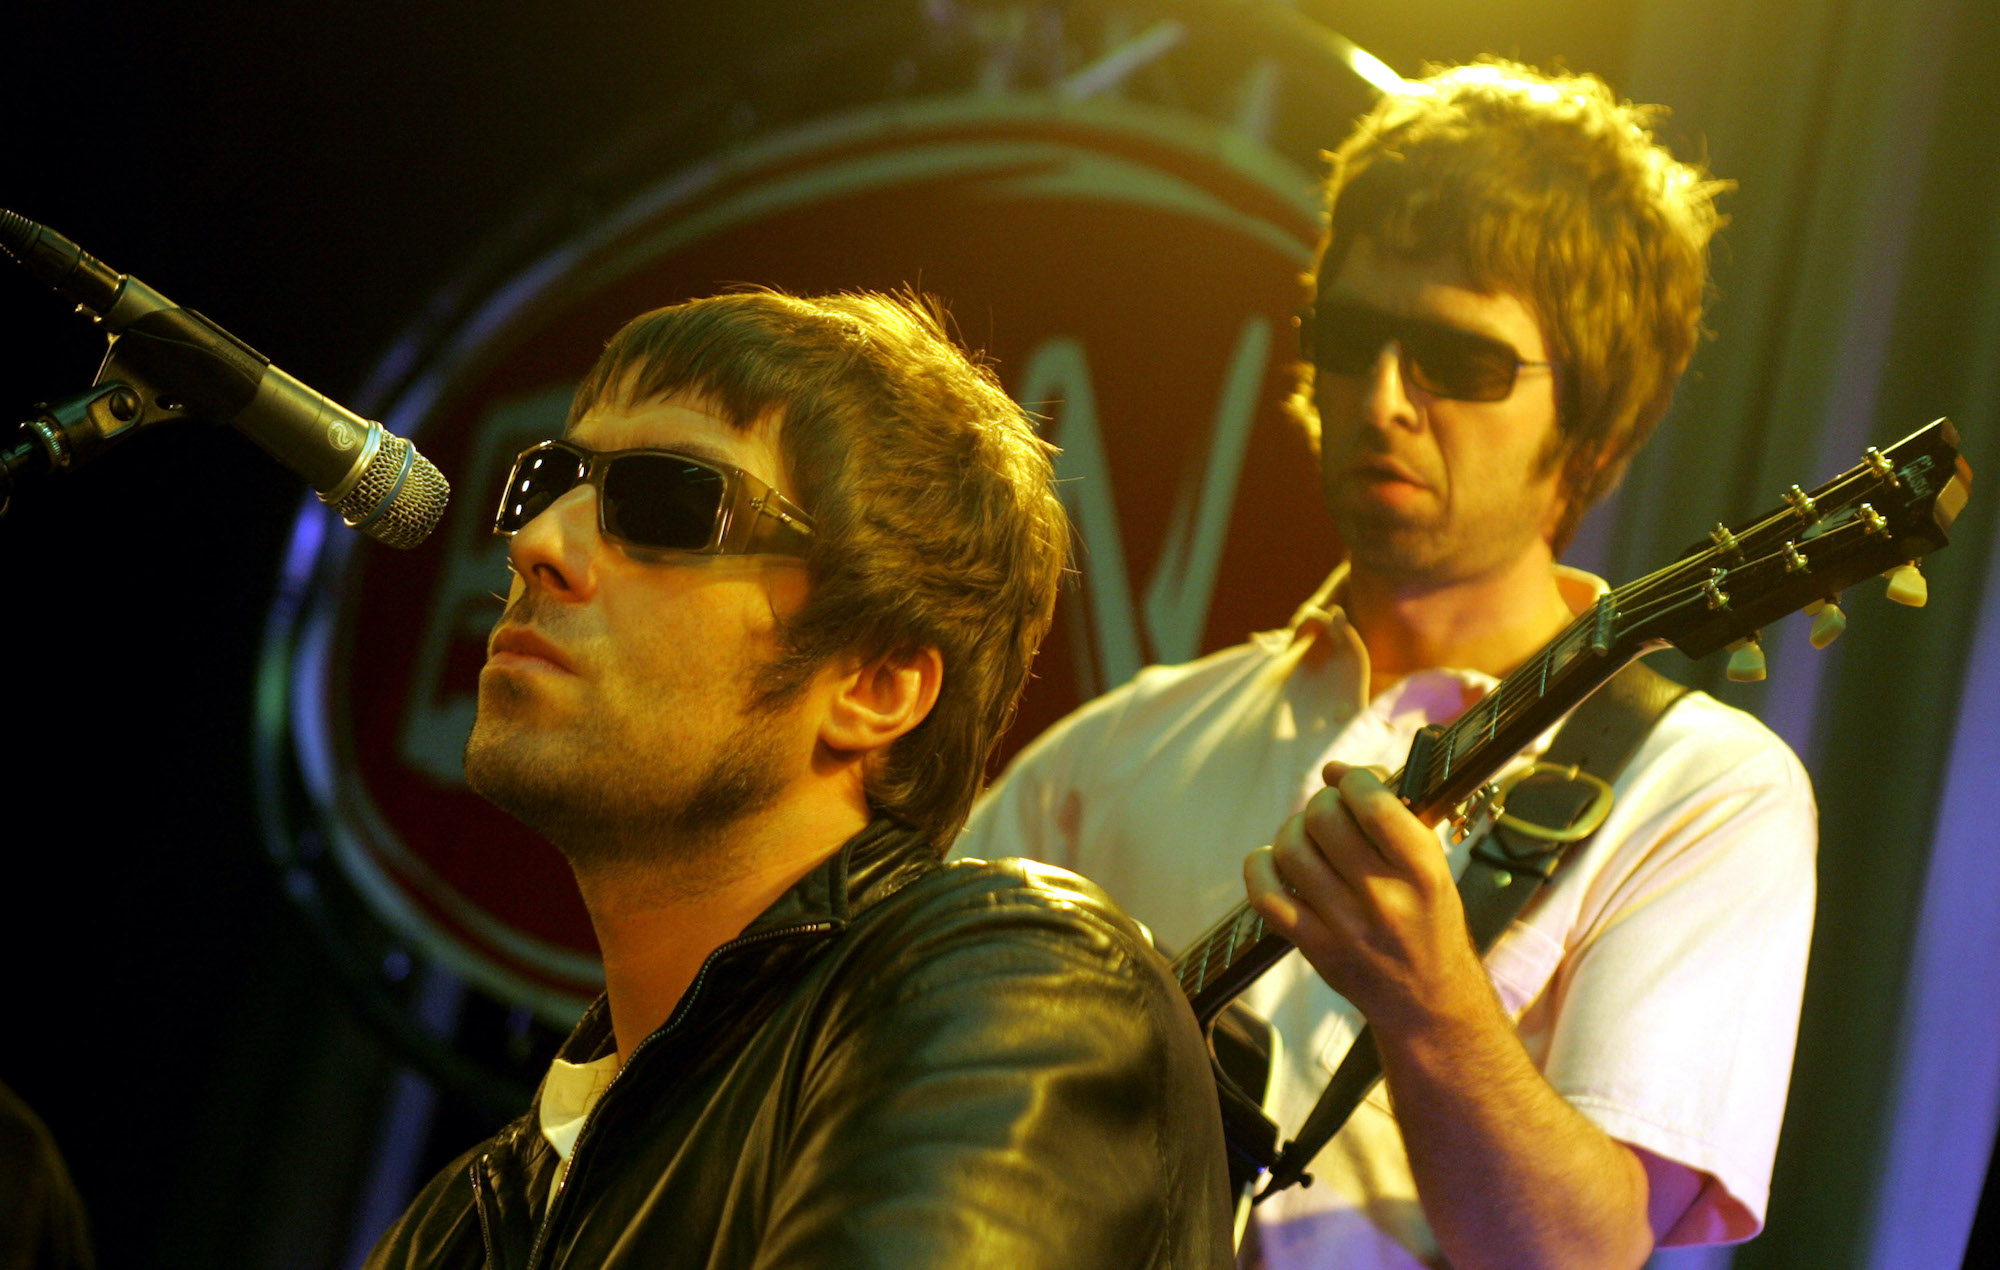 """Liam Gallagher jokes he and brother Noel have been """"self-isolating for 10 years"""" - EpicNews"""